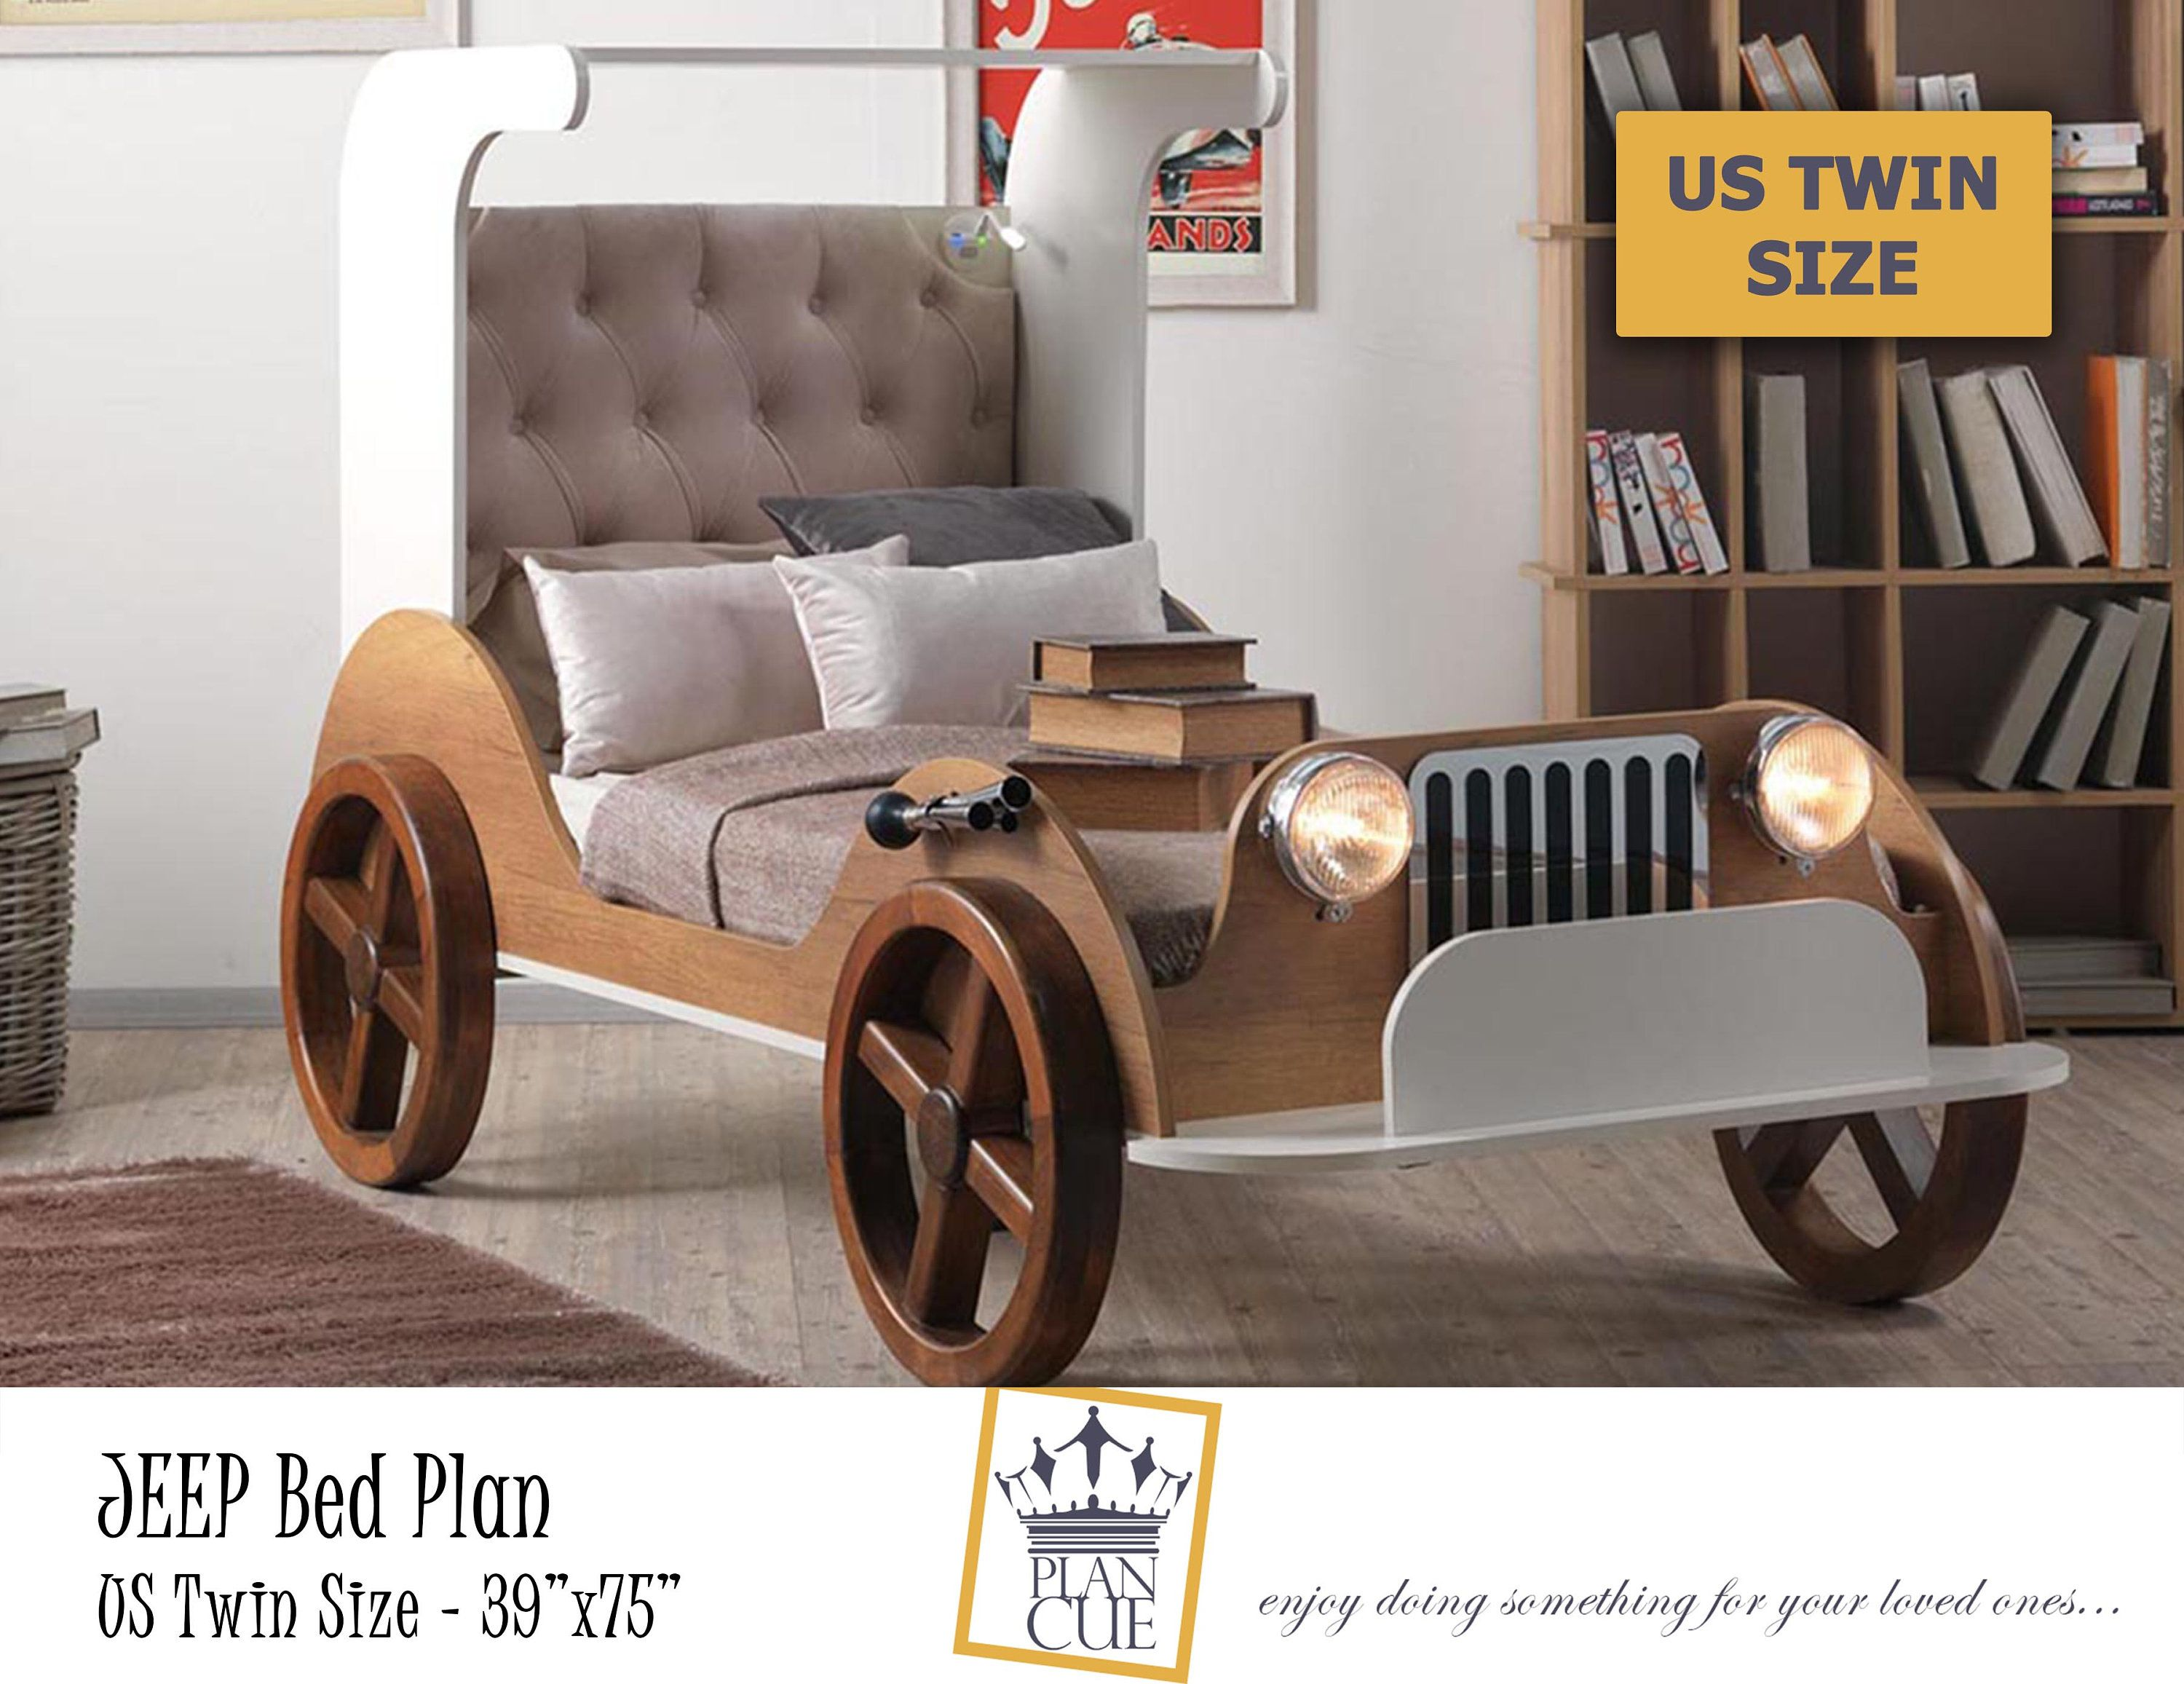 Jeep Car Bed Plan, Twin Bed Frame Plan, wooden toddler bed